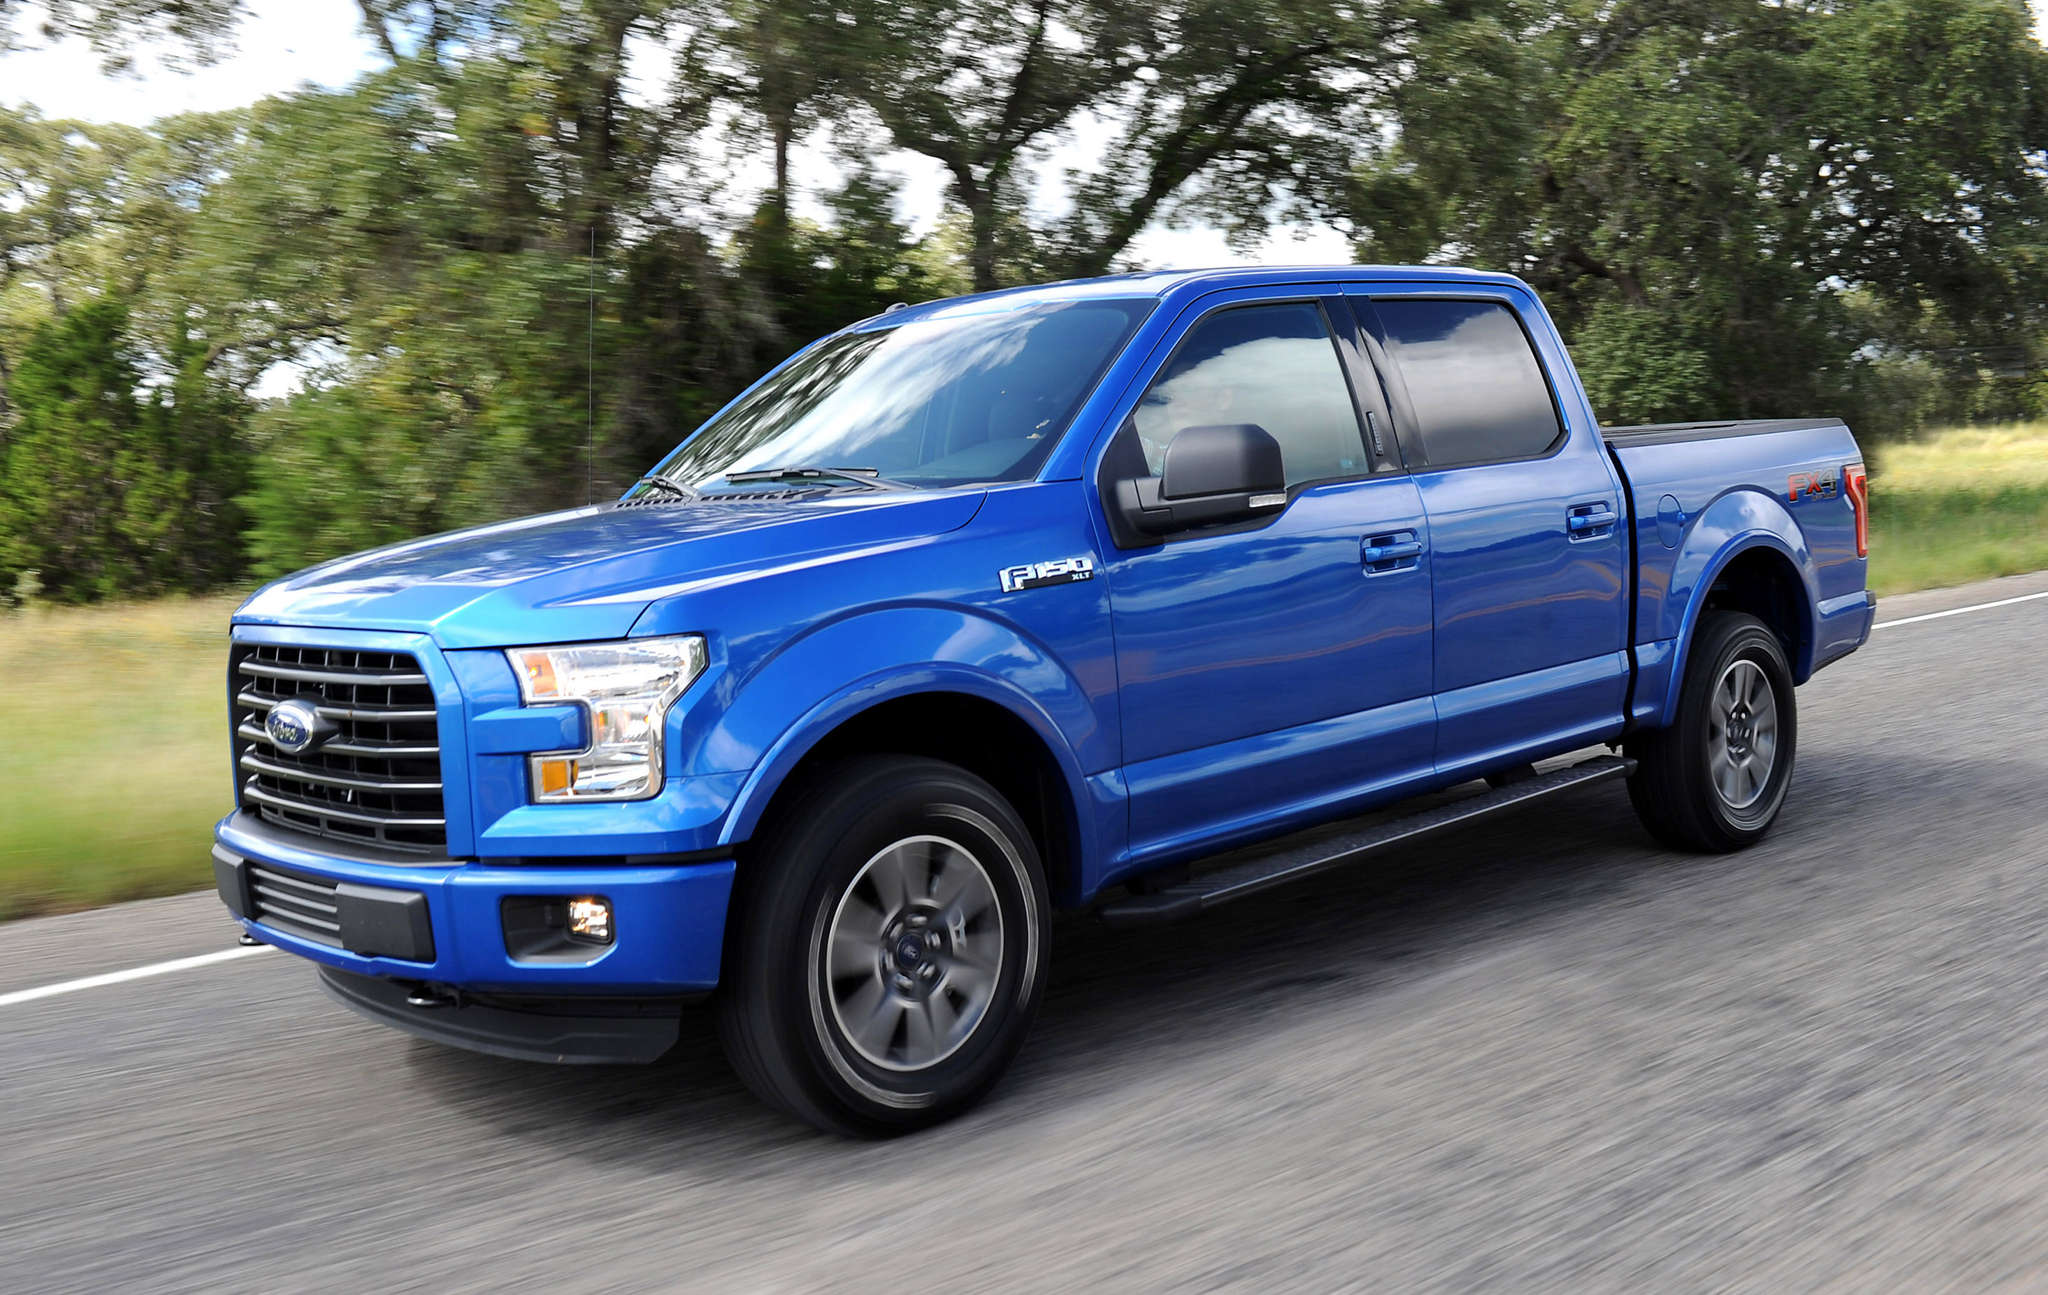 Redesigned with an aluminum body, said to cut 700 pounds and save fuel, the 2015 Ford F-150 really handles like a car.